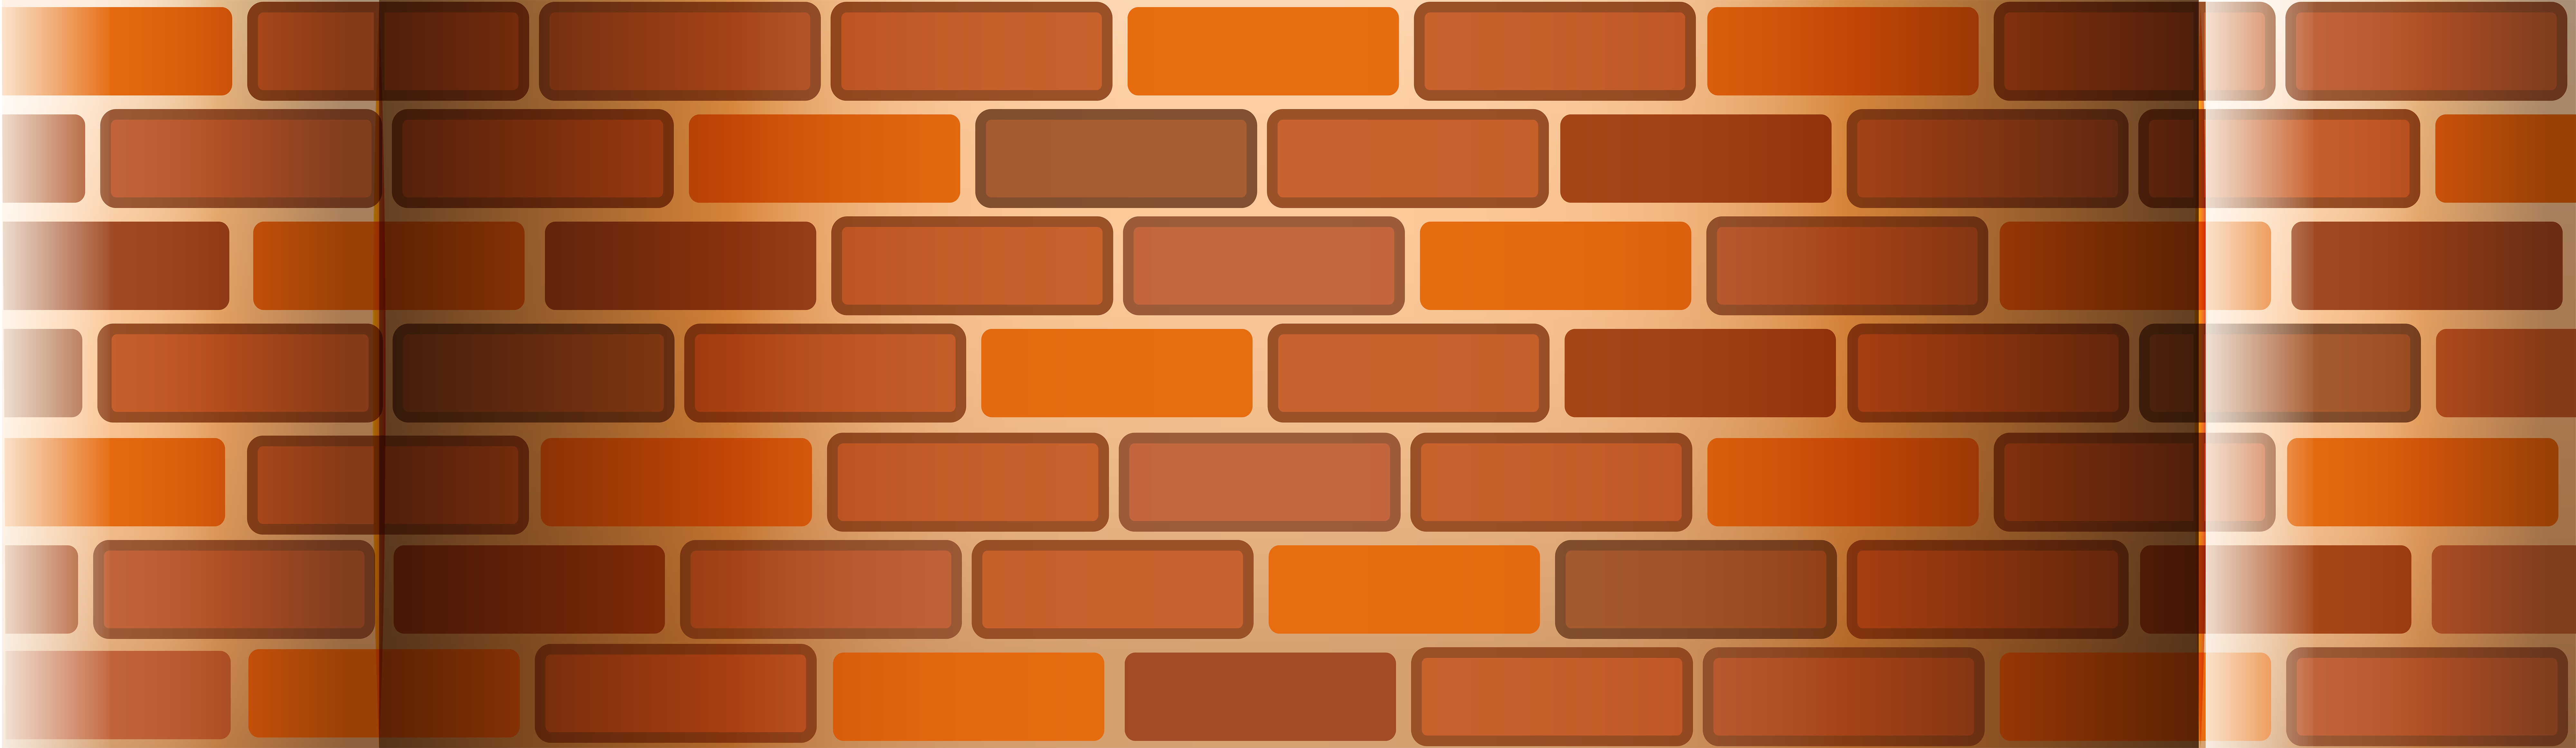 jpg transparent stock Brick fence transparent png. Clipart wall